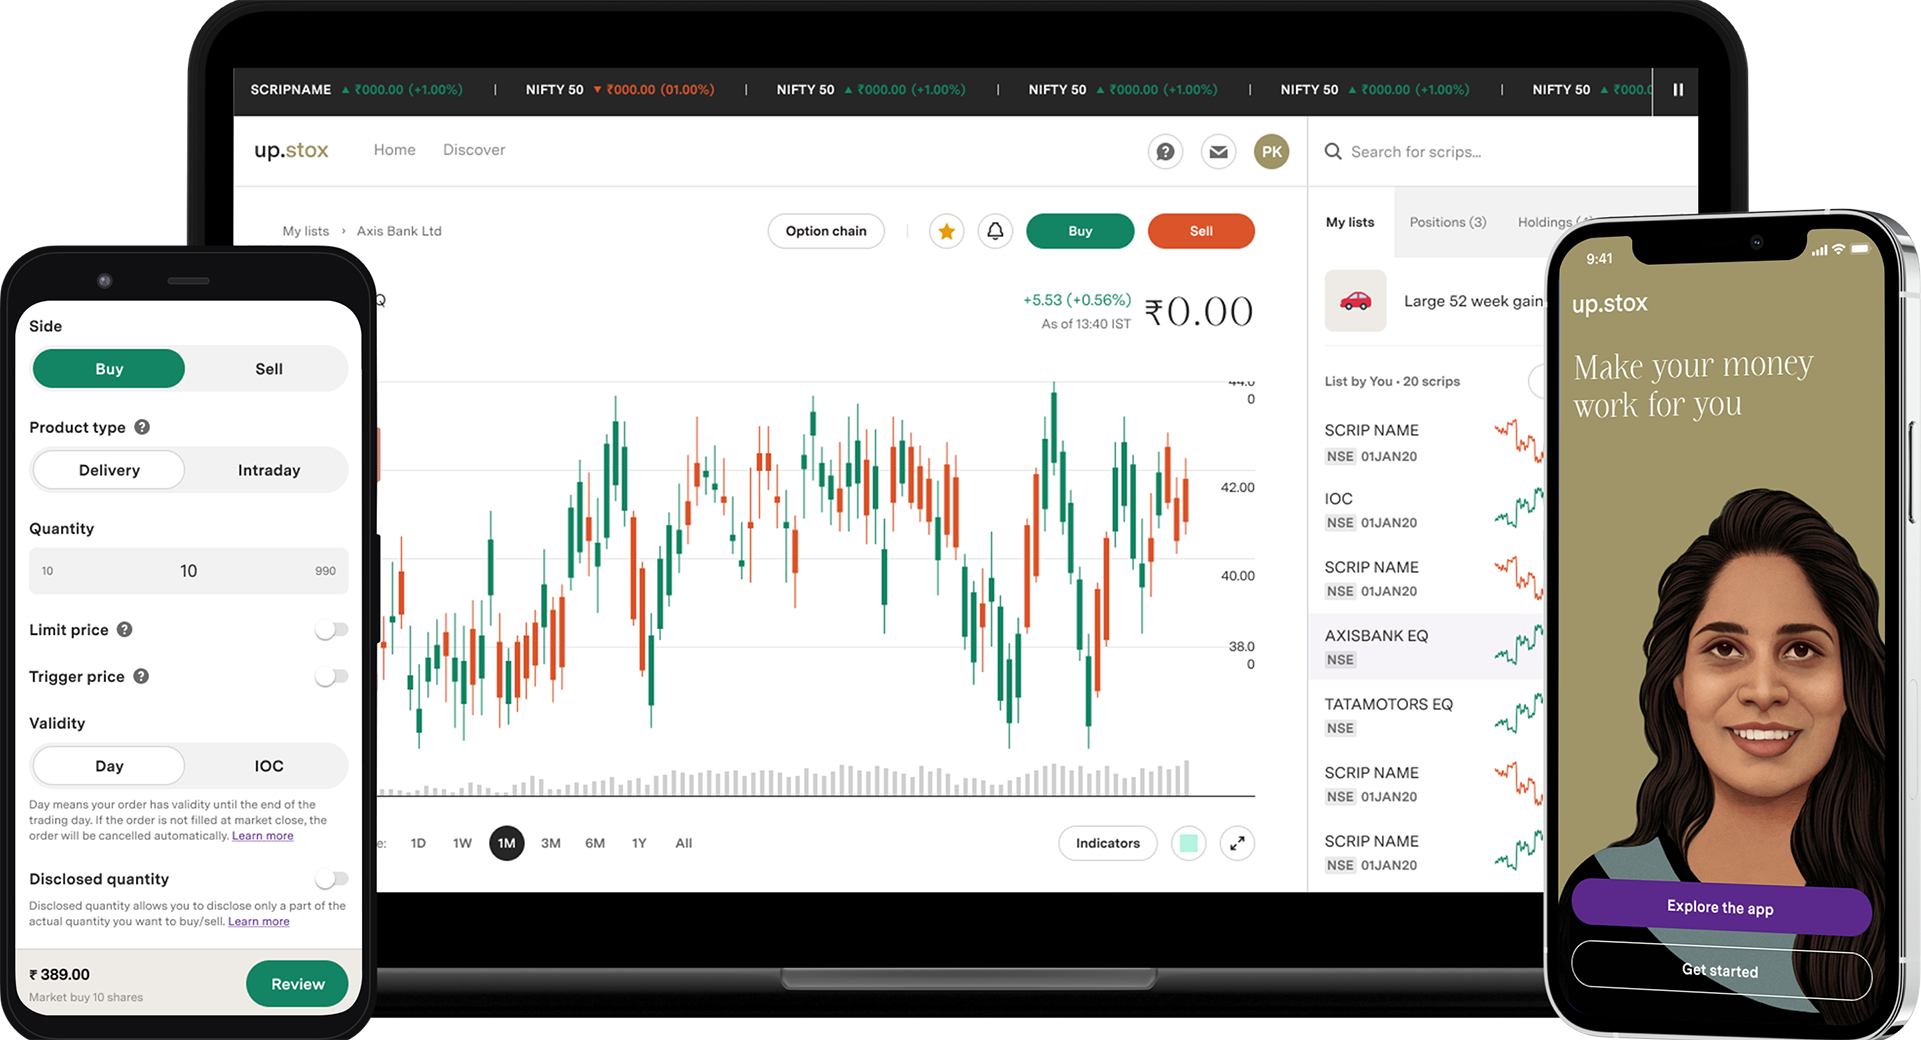 upstox - online share/stock trading, options trading, discount brokers in  india